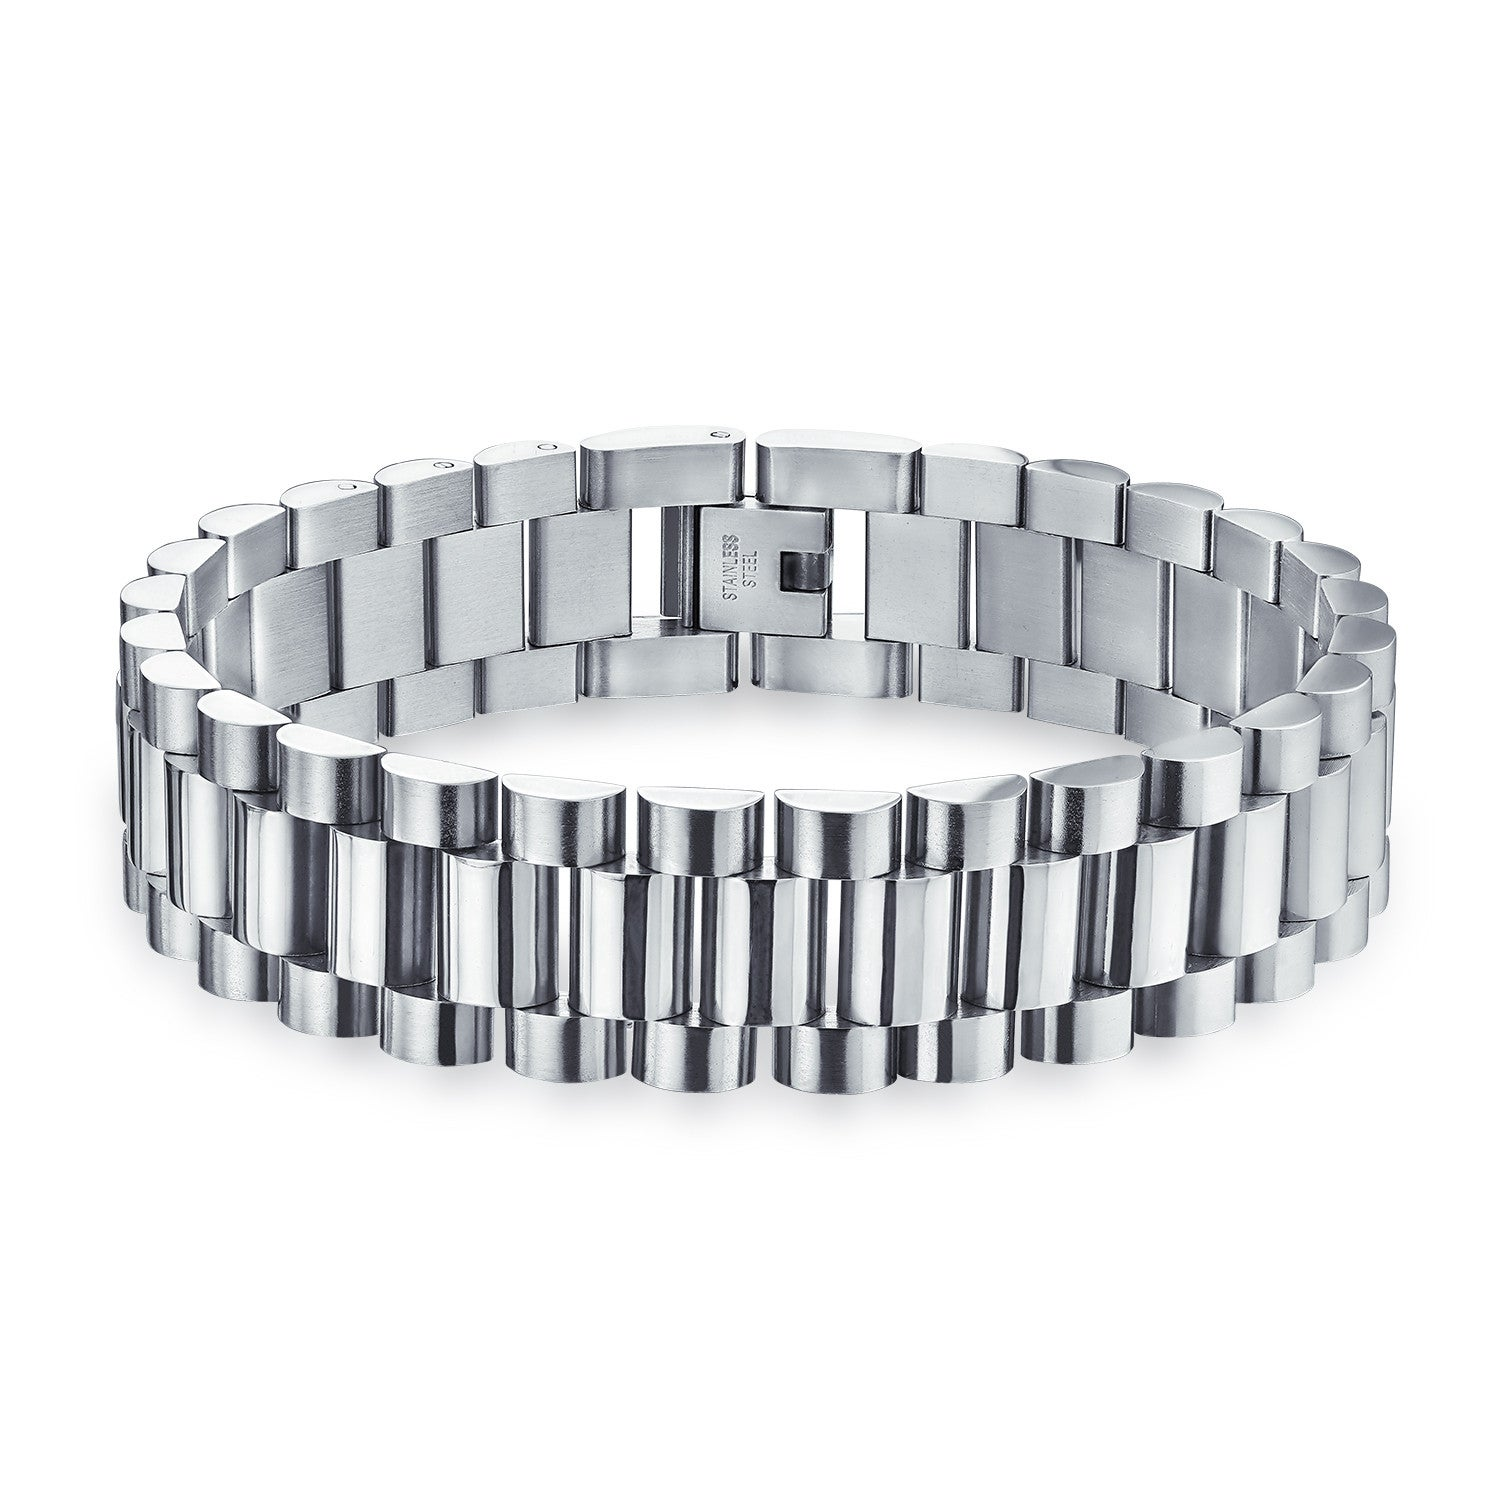 Image of Jubilee Bracelet - Shiny Stainless Steel